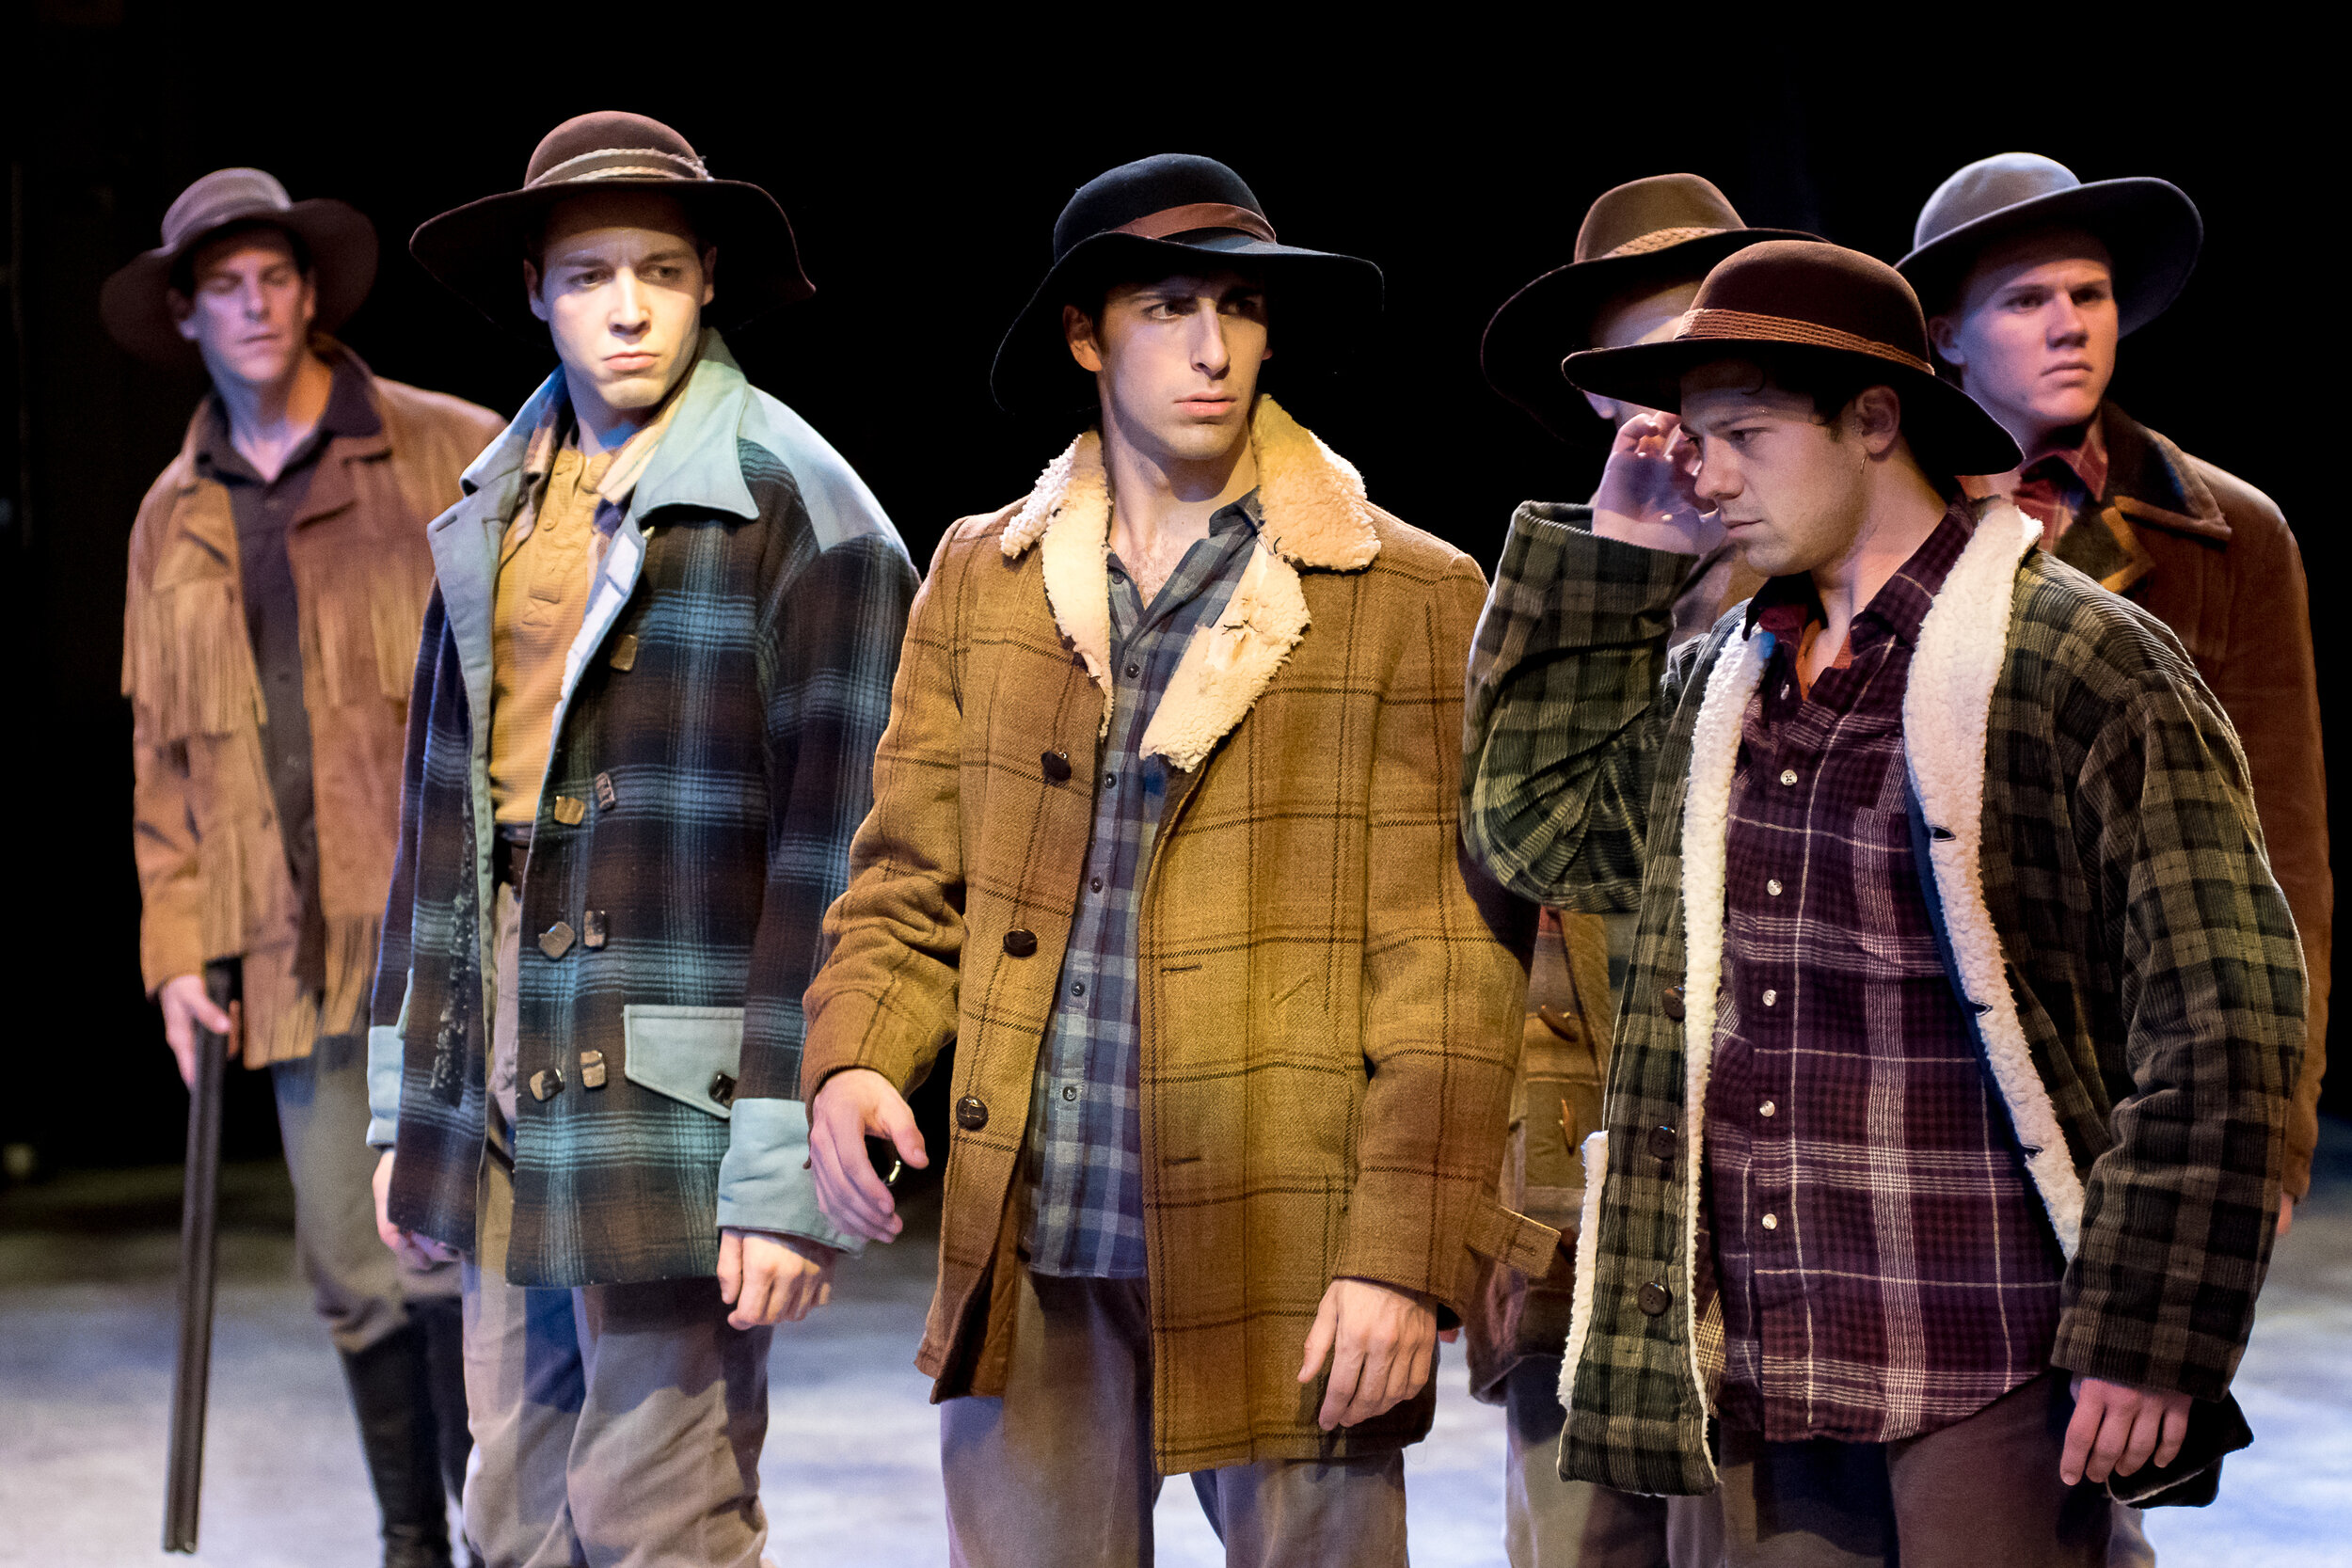 Brother's Hats- 7 Brides for 7 Brothers- Music Theatre Wichita 2017  Costume Design by Debbie Roberts. All designs by the seasonal staff of MTW. Photos courtesy of Christopher Clark and John Fritchman.